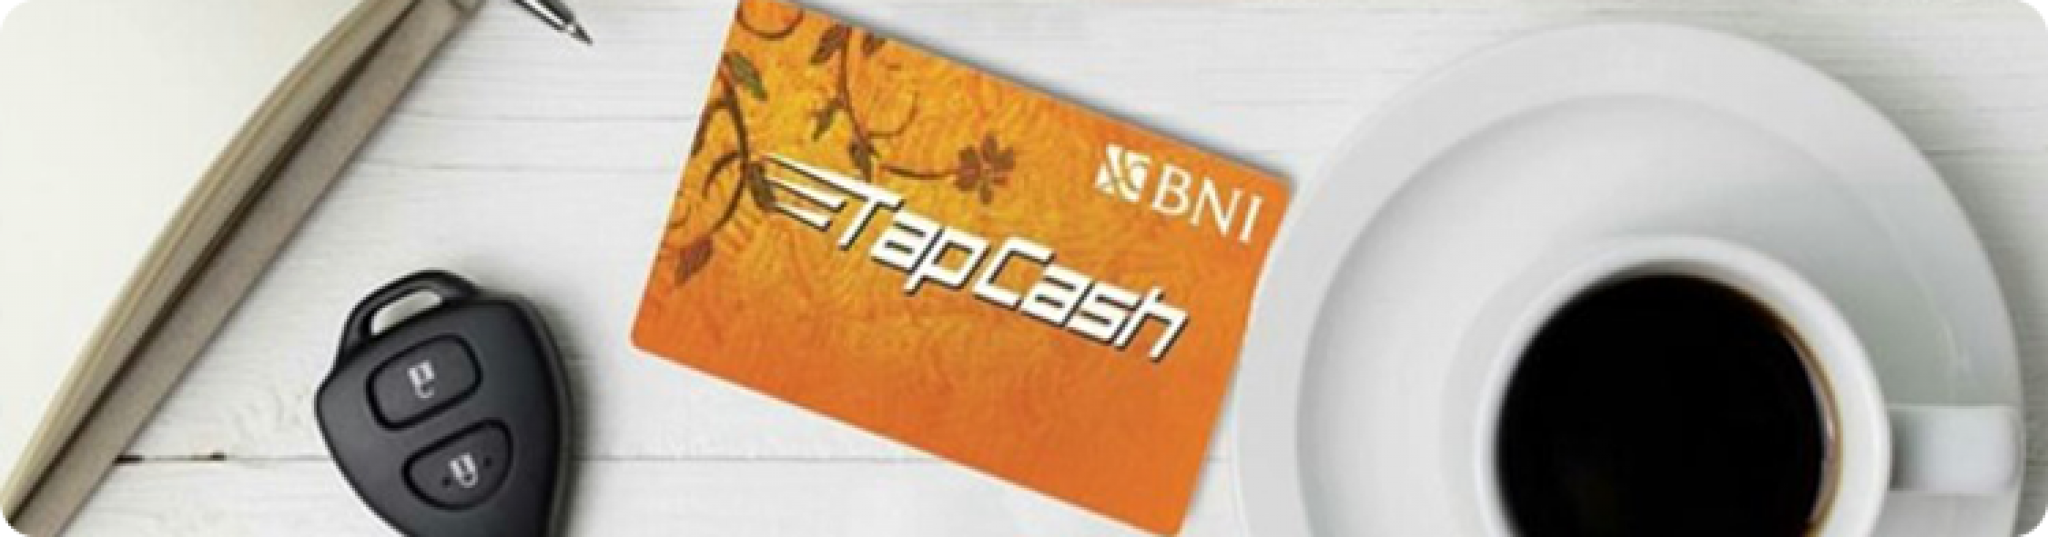 e-money BNI - Tap Cash _ CekAja